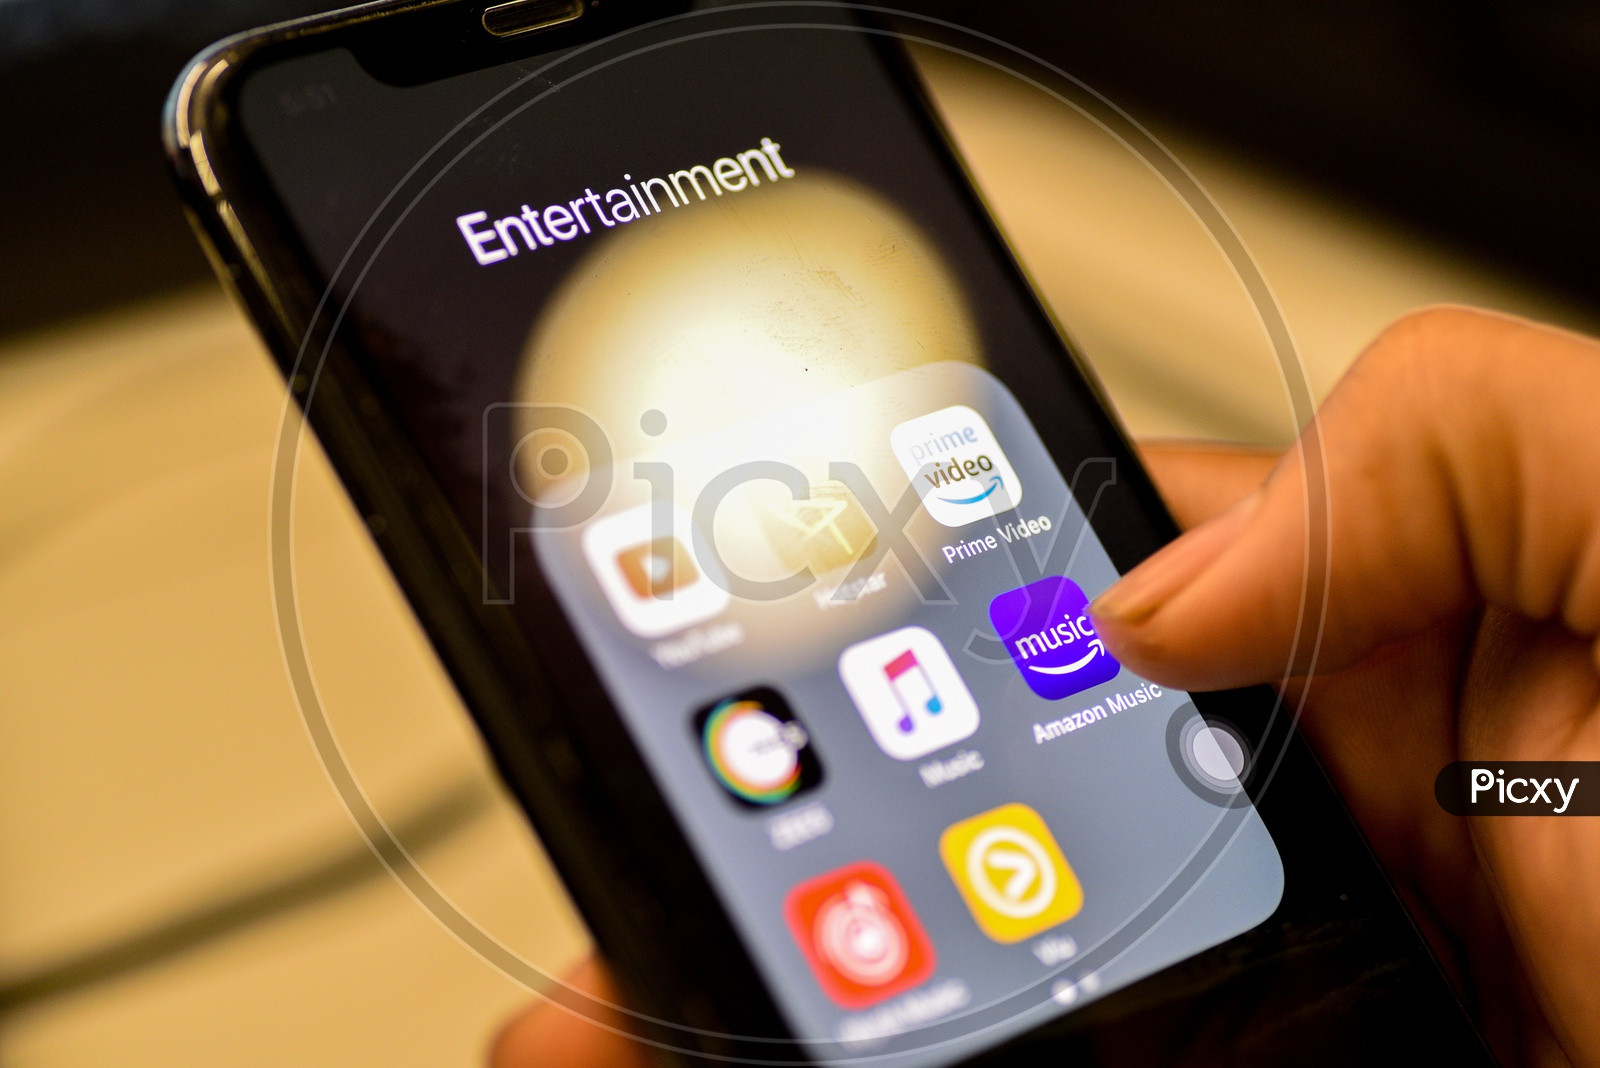 Entertainment Online Music Streaming Apps Installed Icons  On a Smartphone Screen Closeup With Man Finger Opening Amazon Music  App